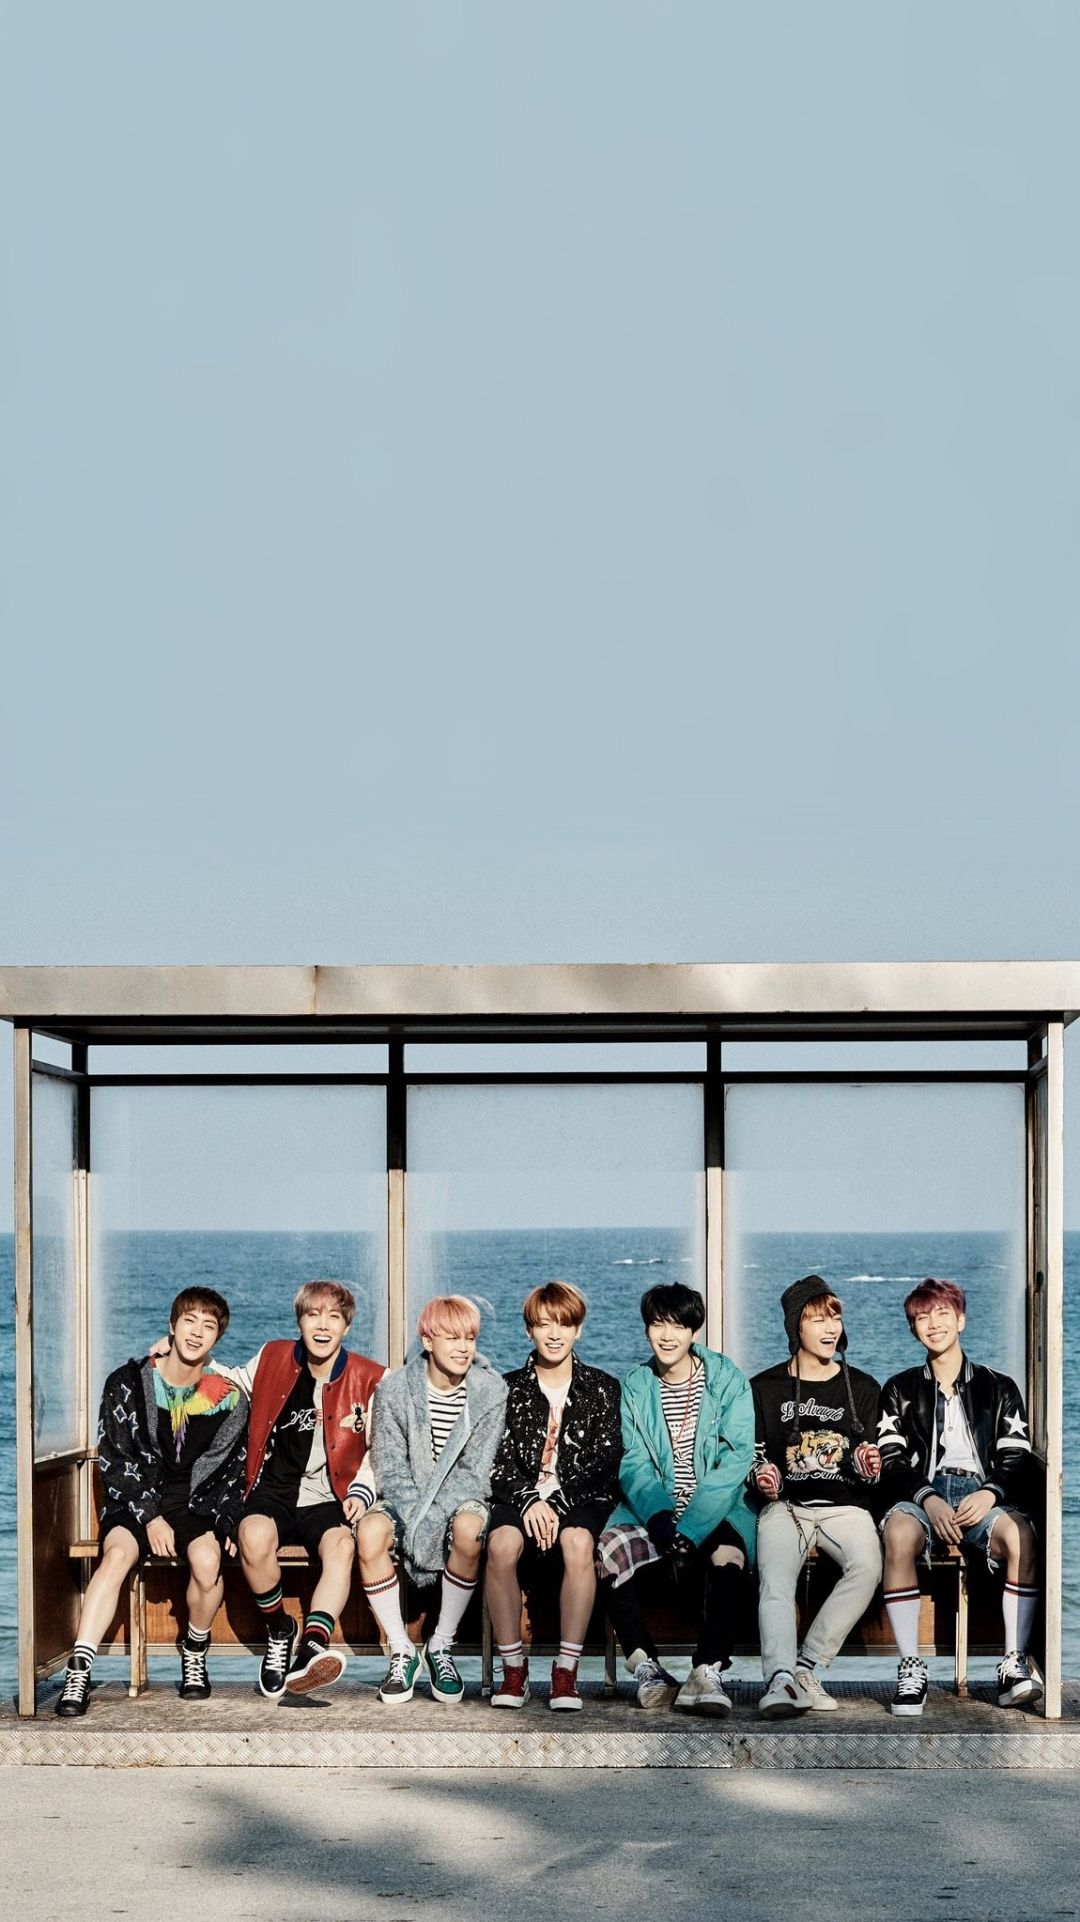 bts wallpaper i need youandroid iphone desktop hd backgrounds wallpapers 1080p 4k cosbd